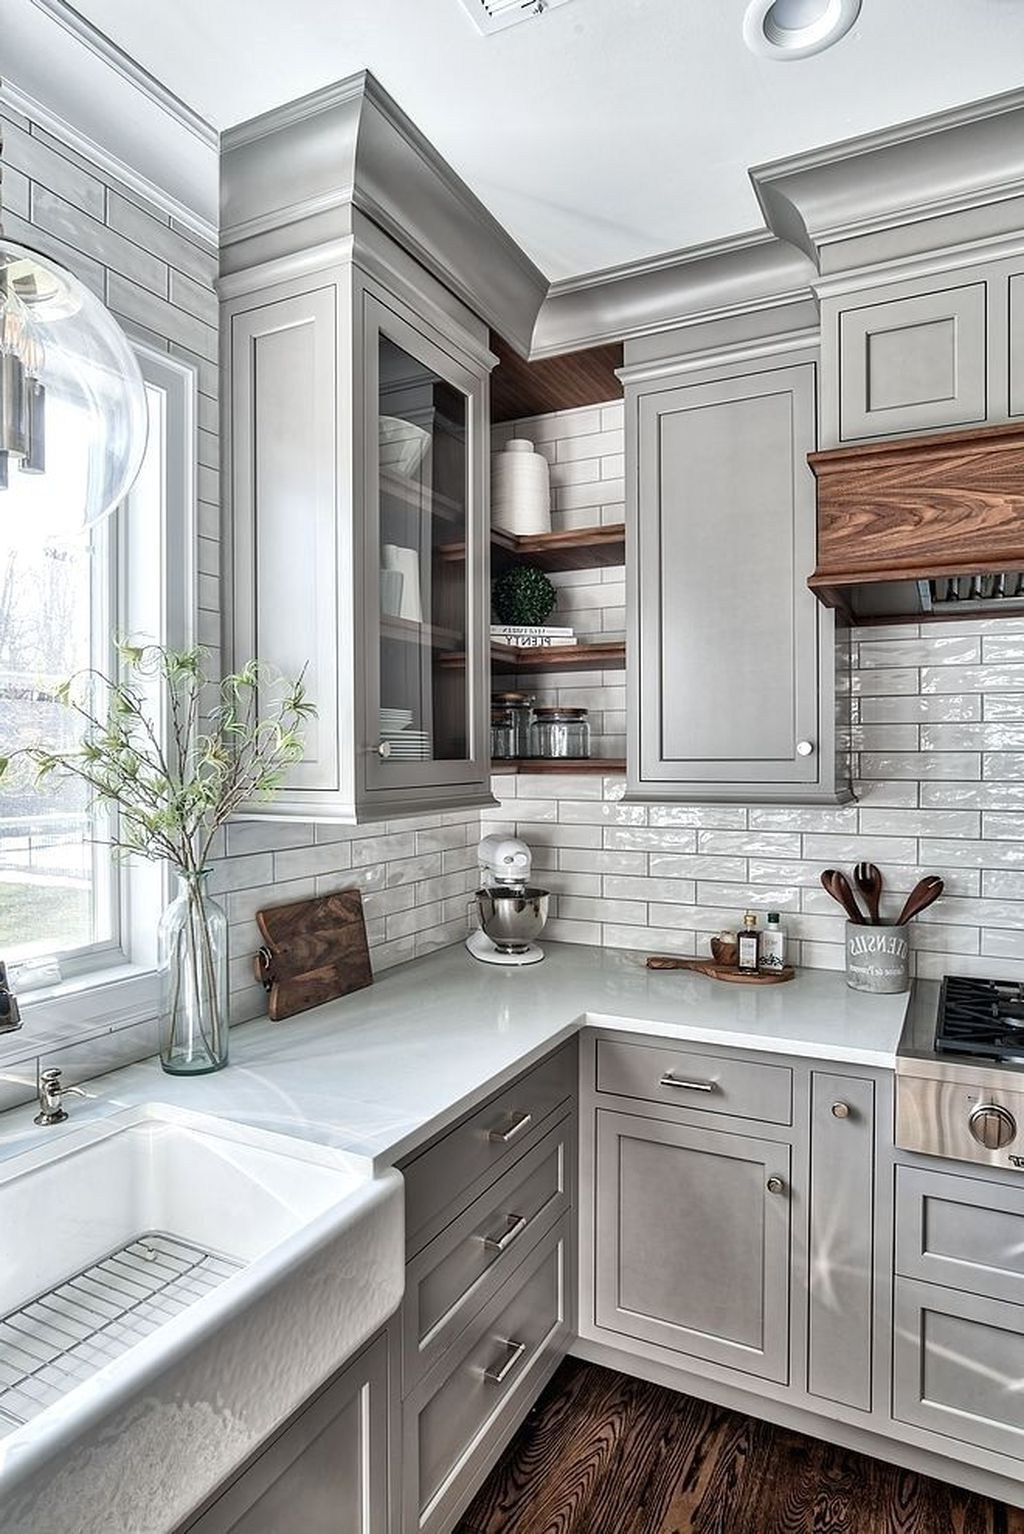 49 Elegant Small Kitchen Ideas Remodel Kitchen Design